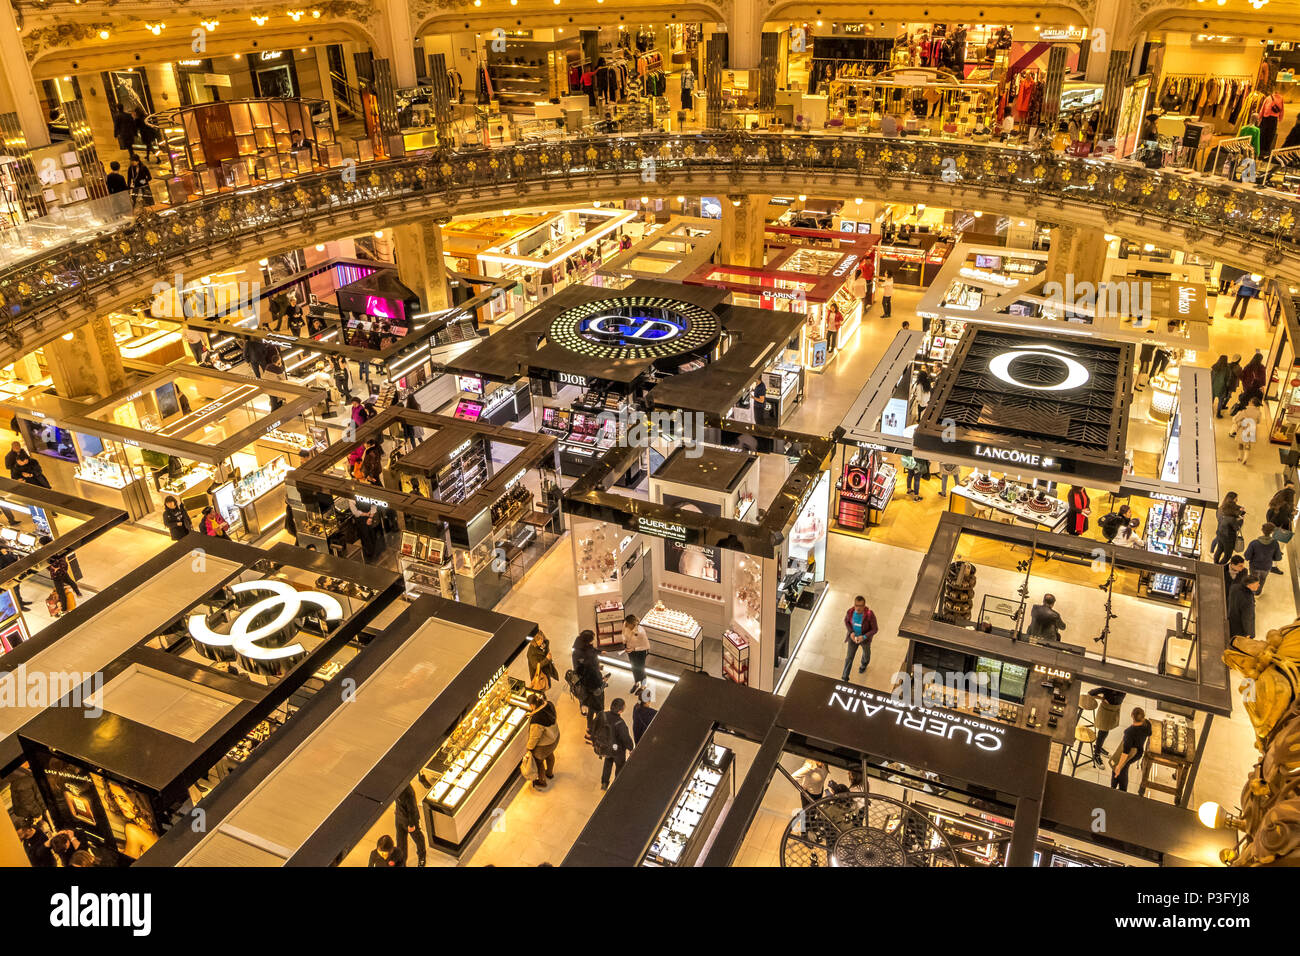 Splendid Interior of  Galeries Lafayette ,an upmarket French department store chain  which is located on Boulevard Haussmann, Paris,France - Stock Image